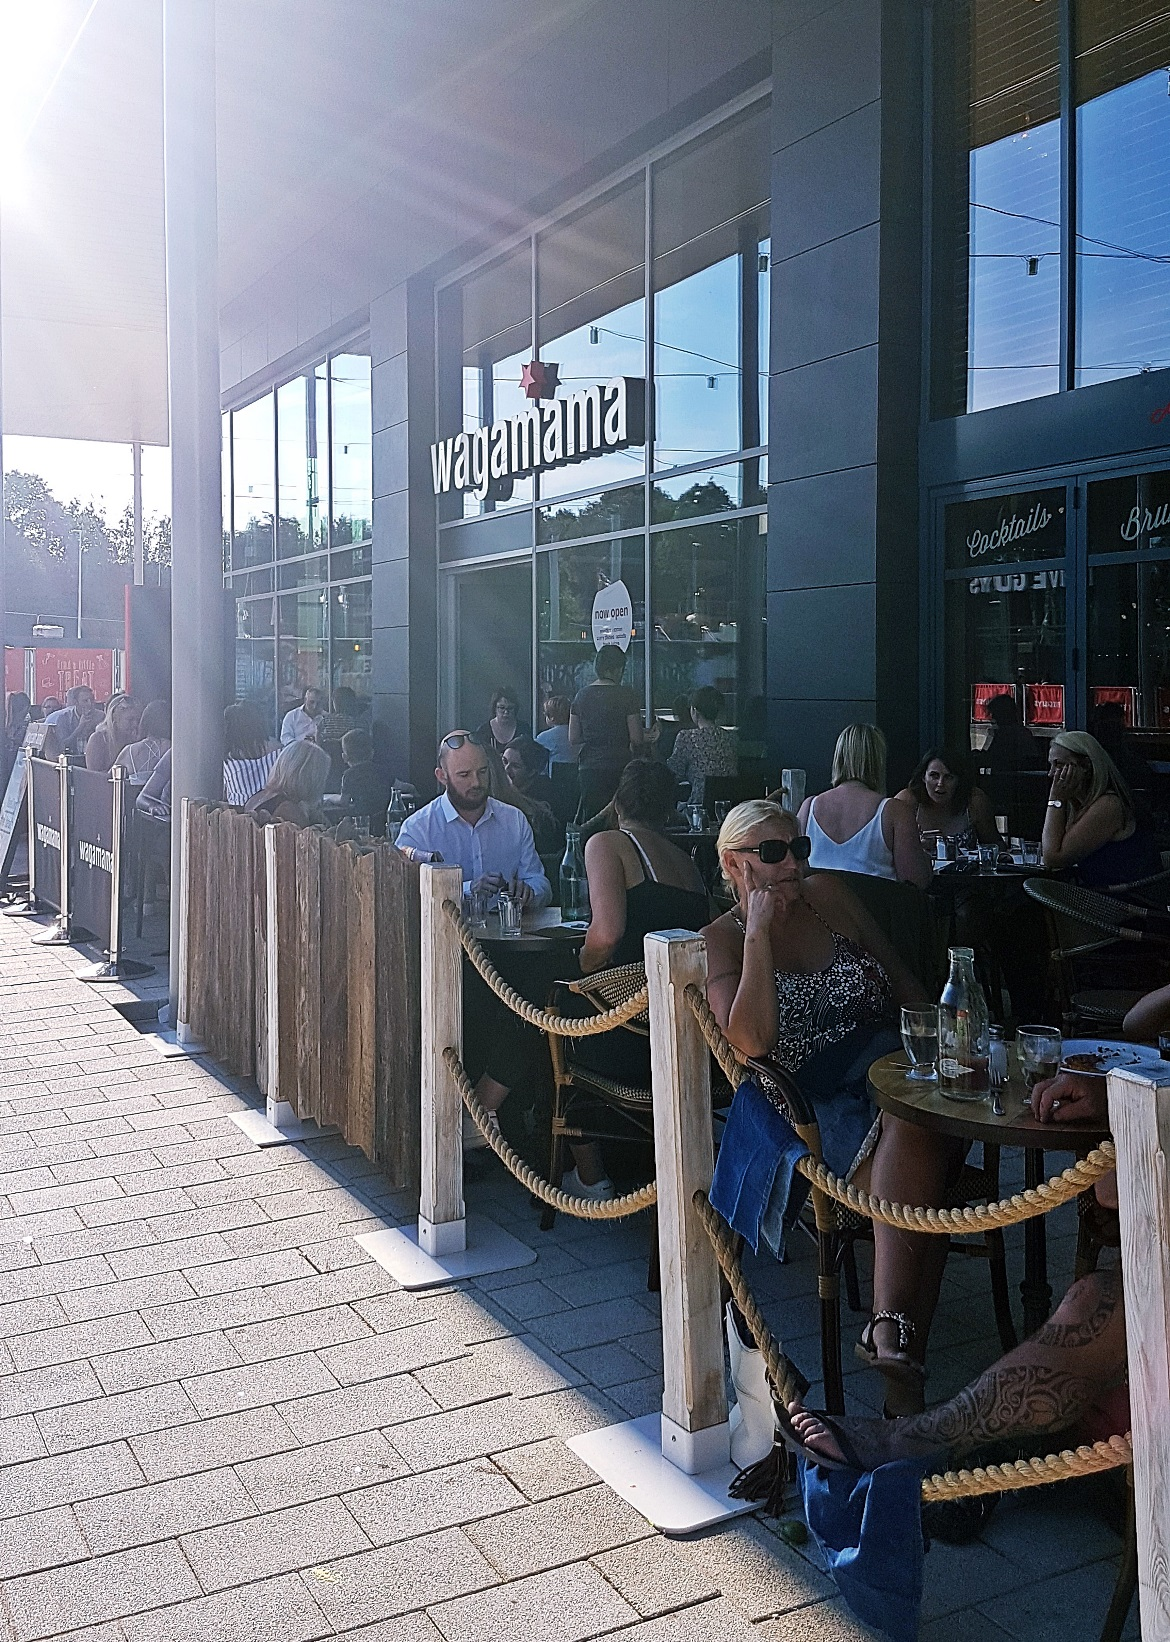 The exterior of Wagamama in the Village at White Rose Leeds - Wagamama Menu Pairing, Review by BeckyBecky Blogs